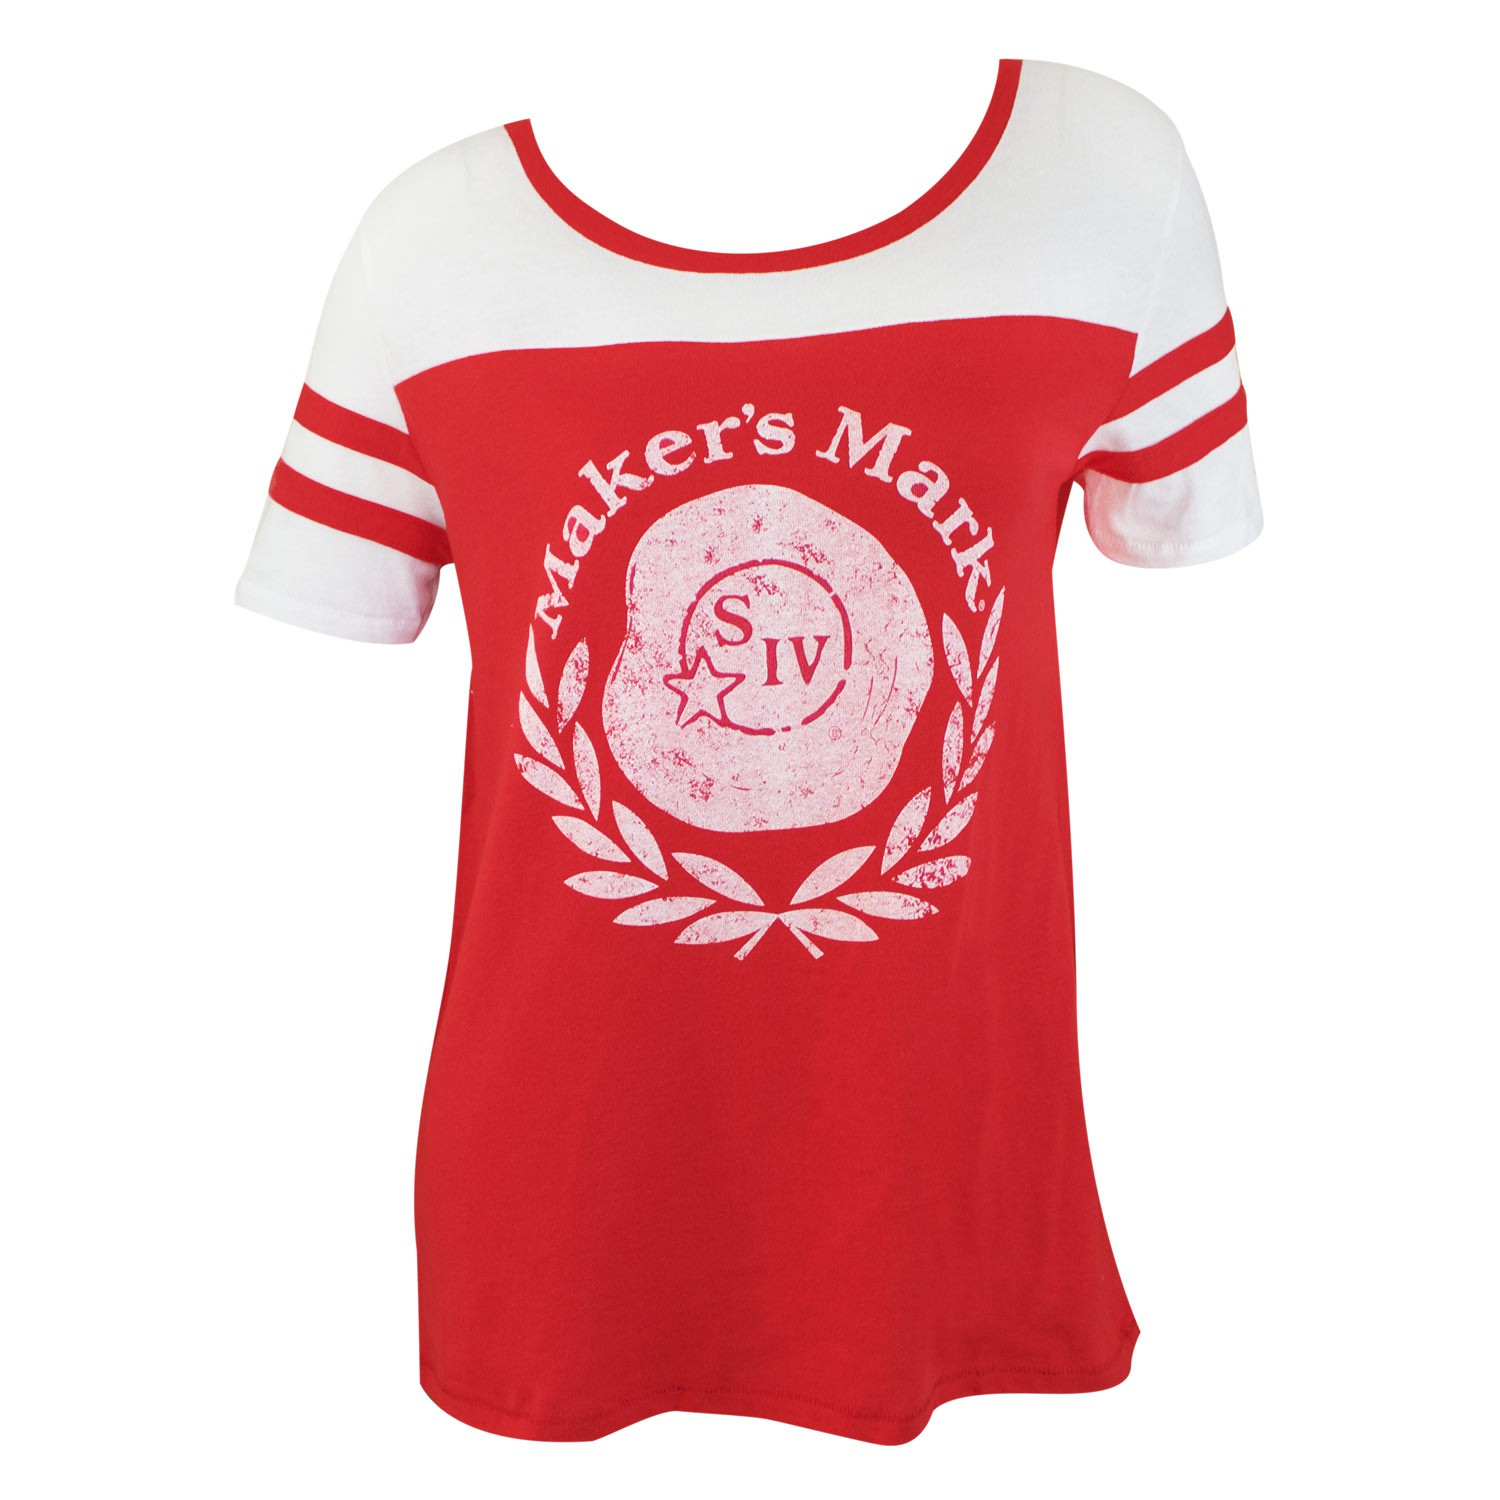 Maker's Mark Vintage Logo Red Women's Jersey Tee Shirt